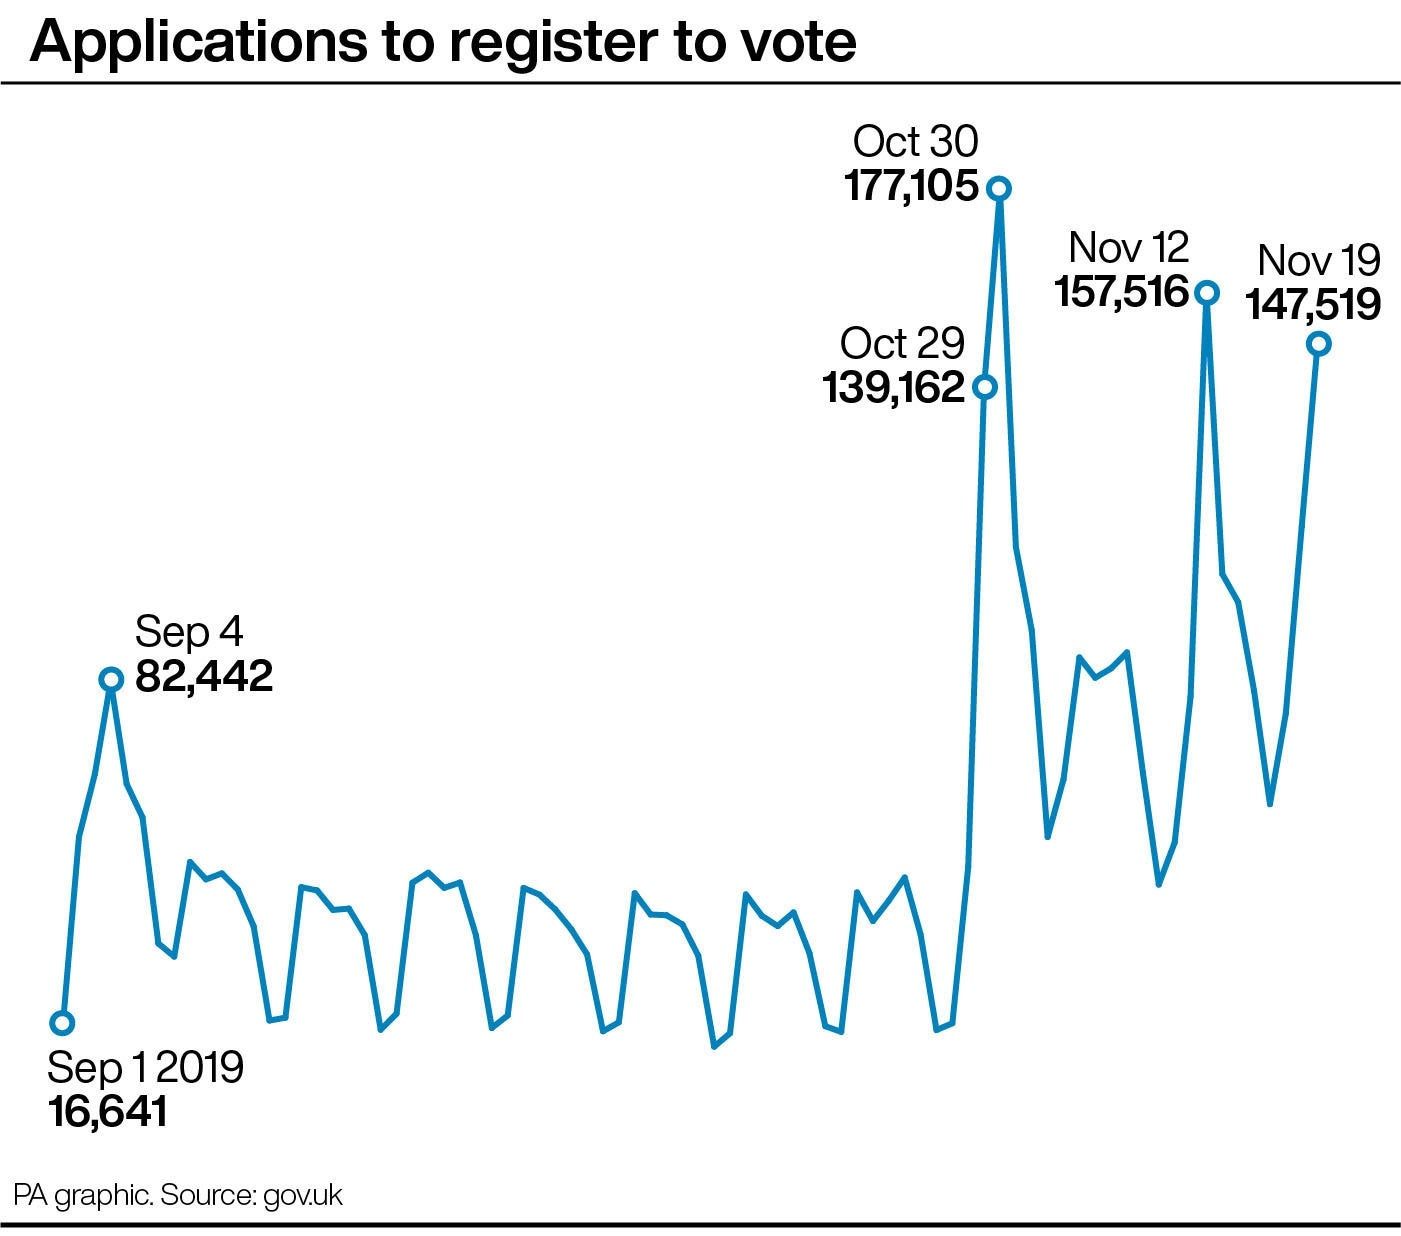 Applications to register to vote